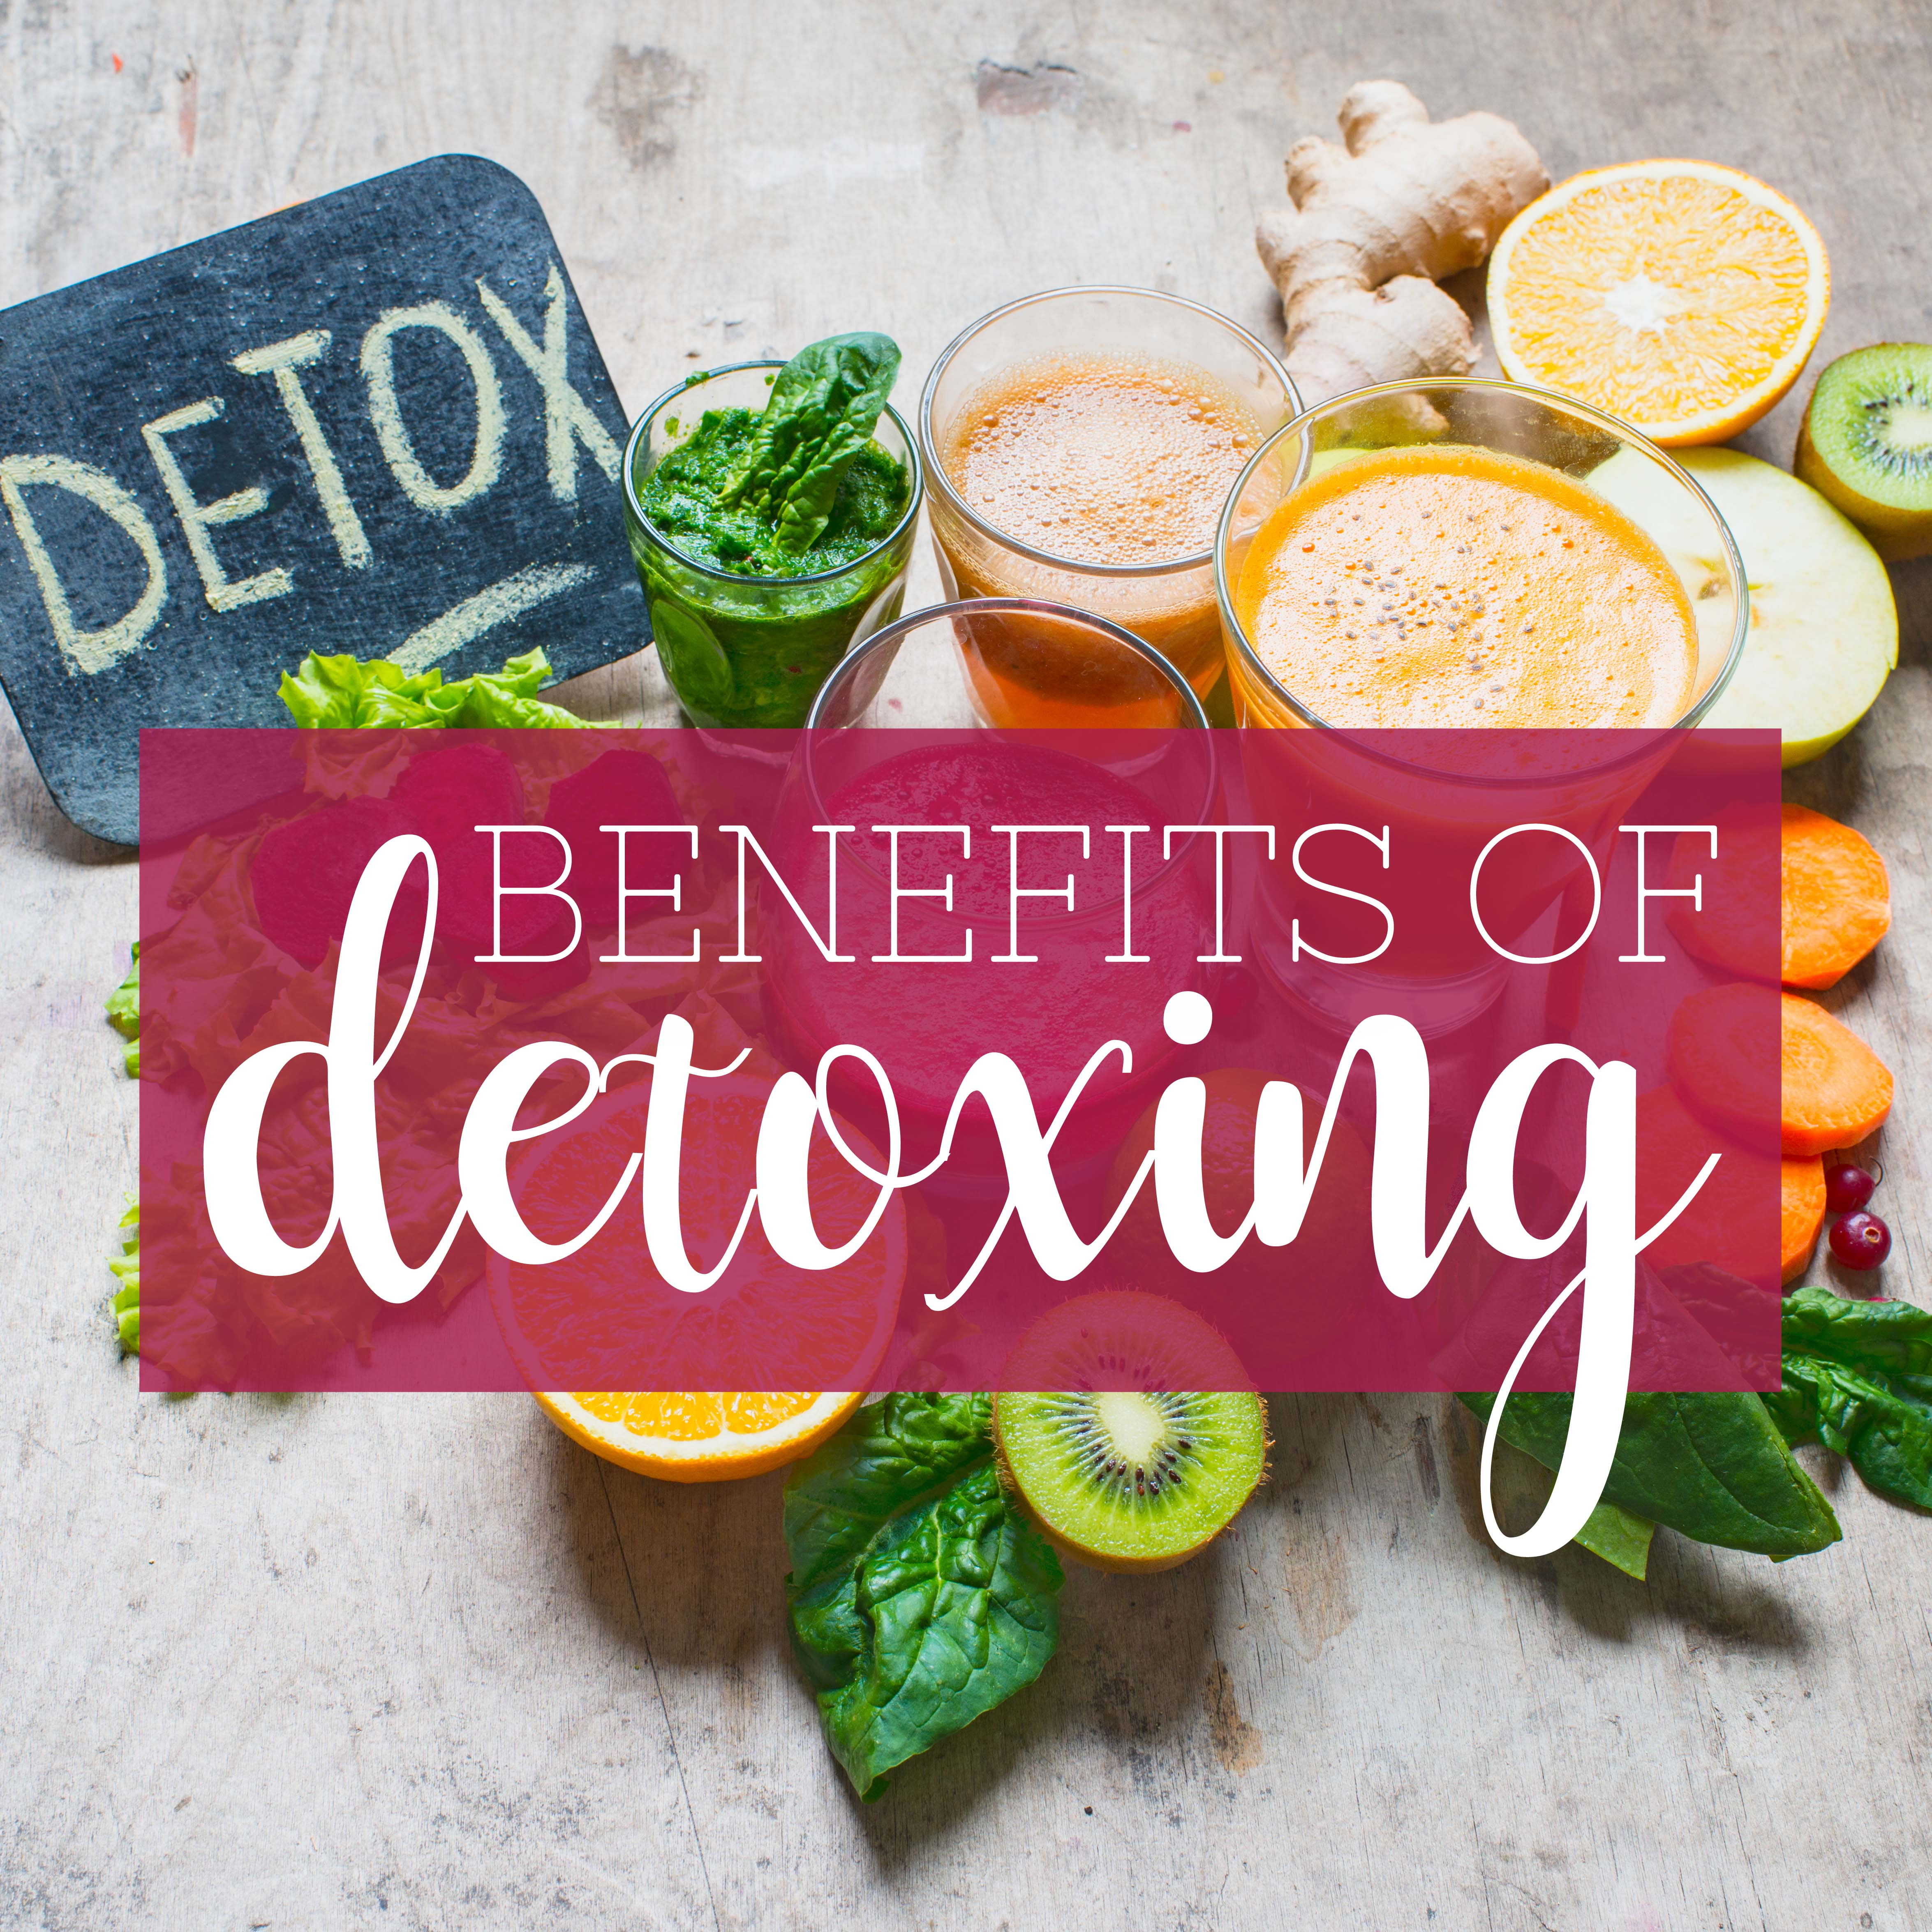 The Benefits of Detoxes